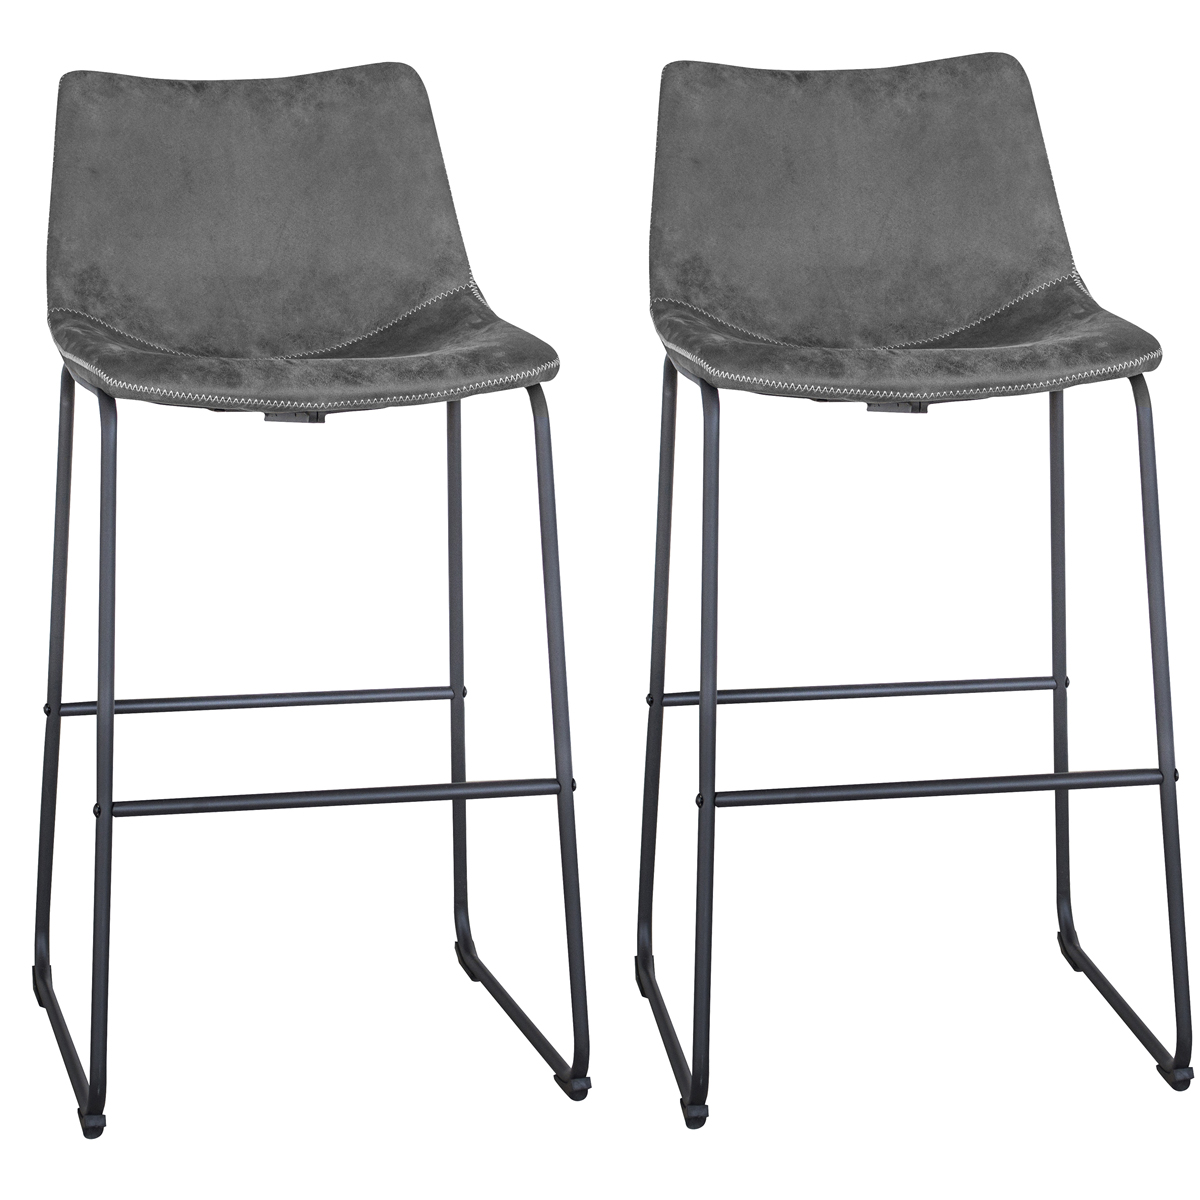 Classic Gray Faux Leather Bar Chair Set